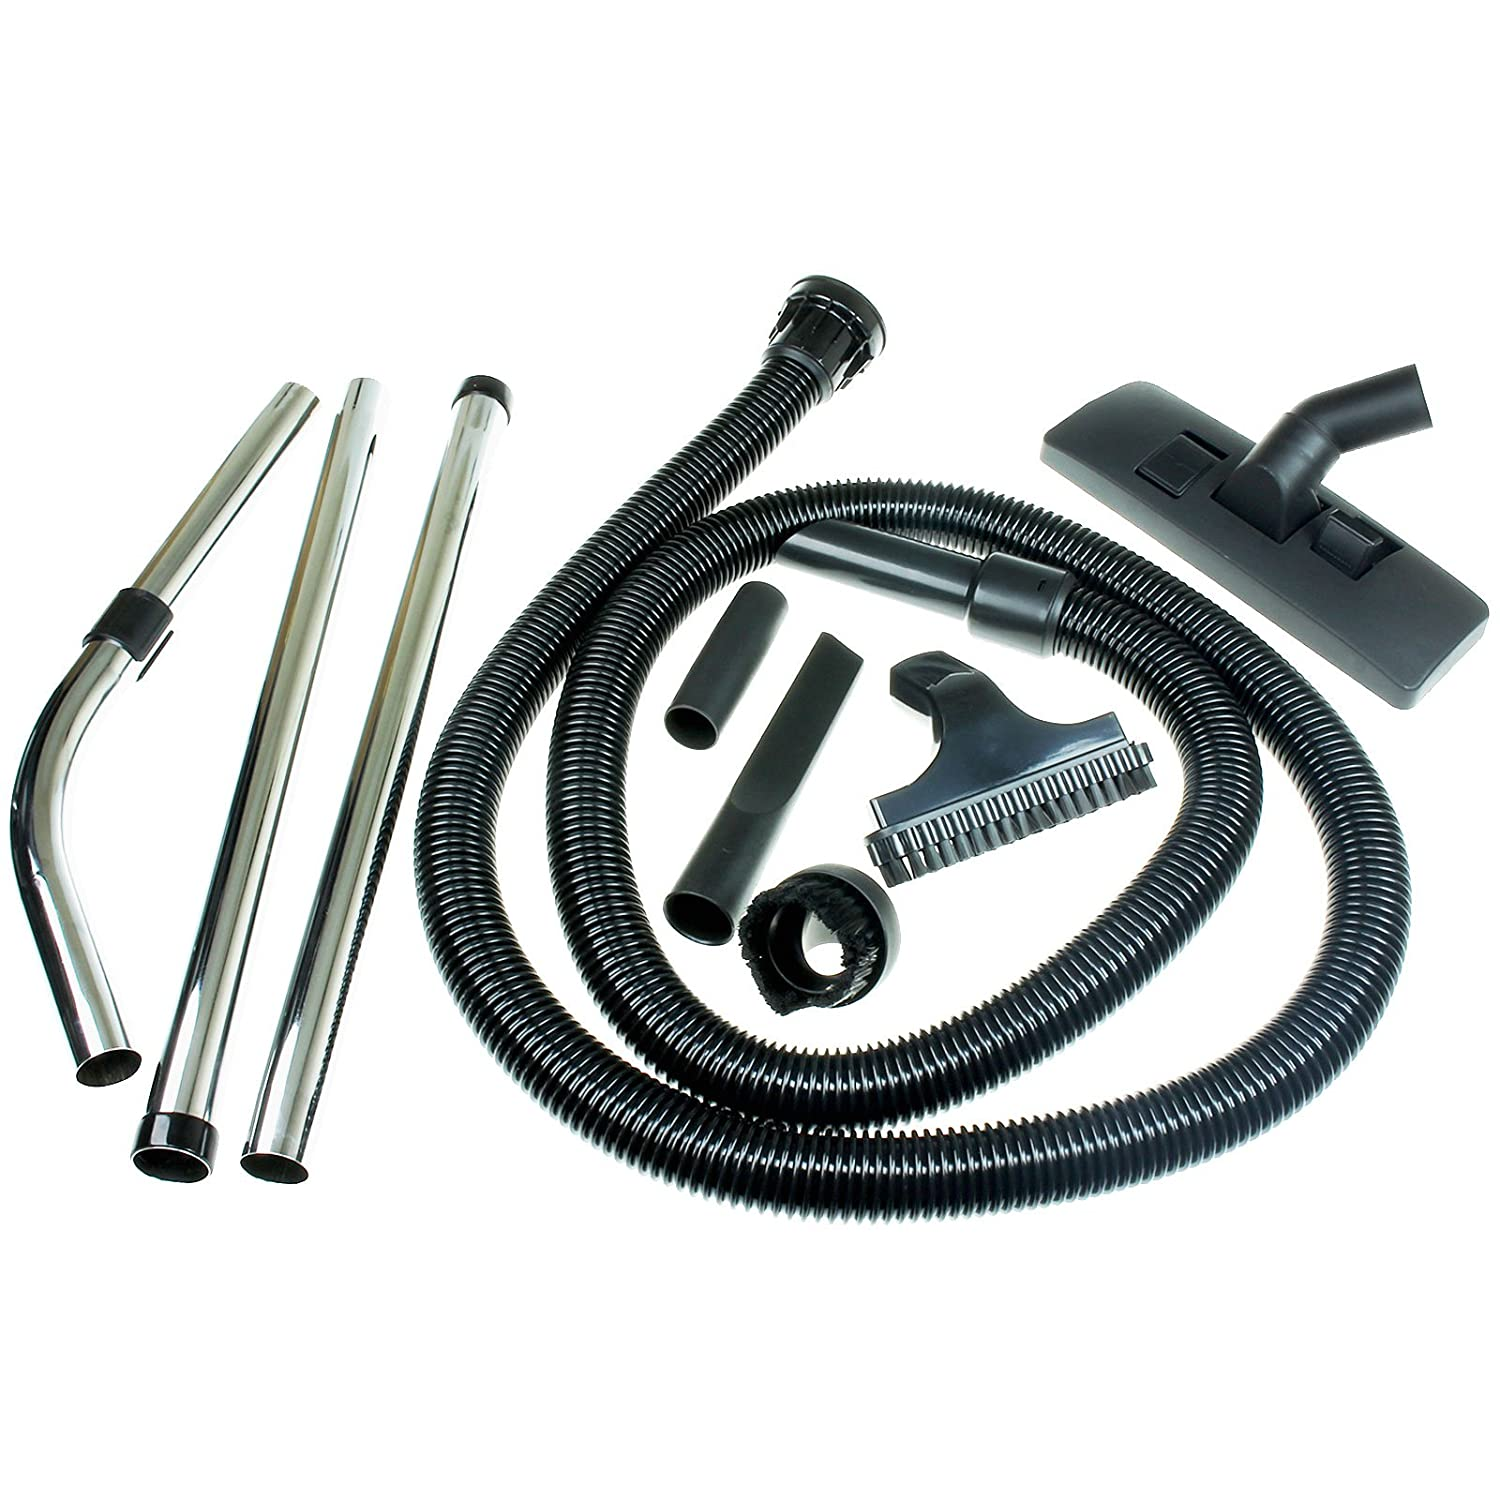 First4Spares Premium Tool Kit for Numatic Henry Canister Vacuum Cleaners (2.5m/ 8Ft))